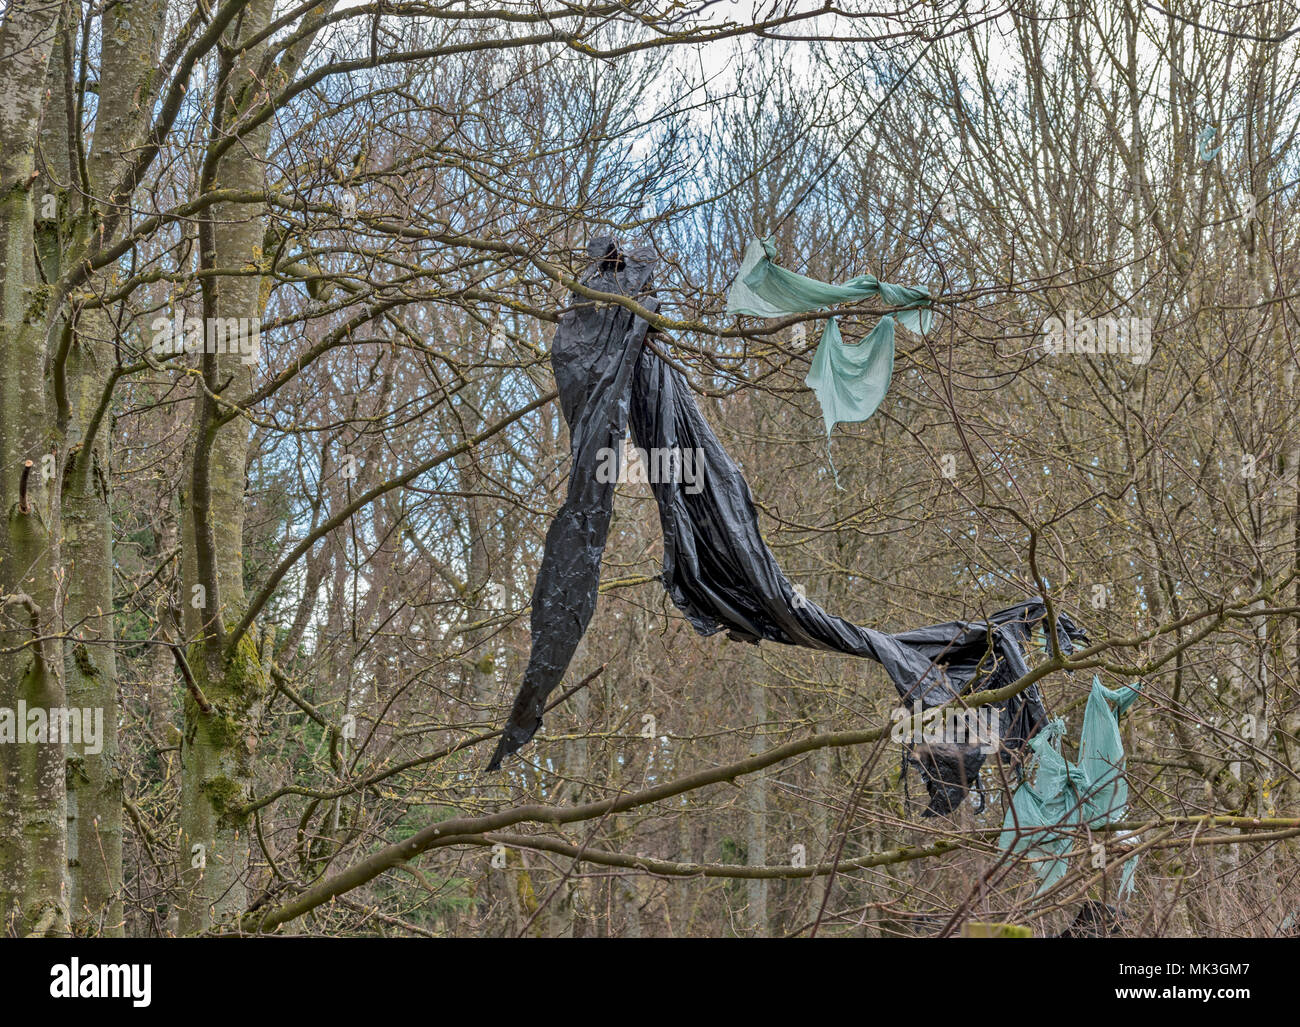 PLASTIC WRAPPERS FROM FARM BALES OF SILEAGE TORN BY WIND AND SUSPENDED IN TREES - Stock Image